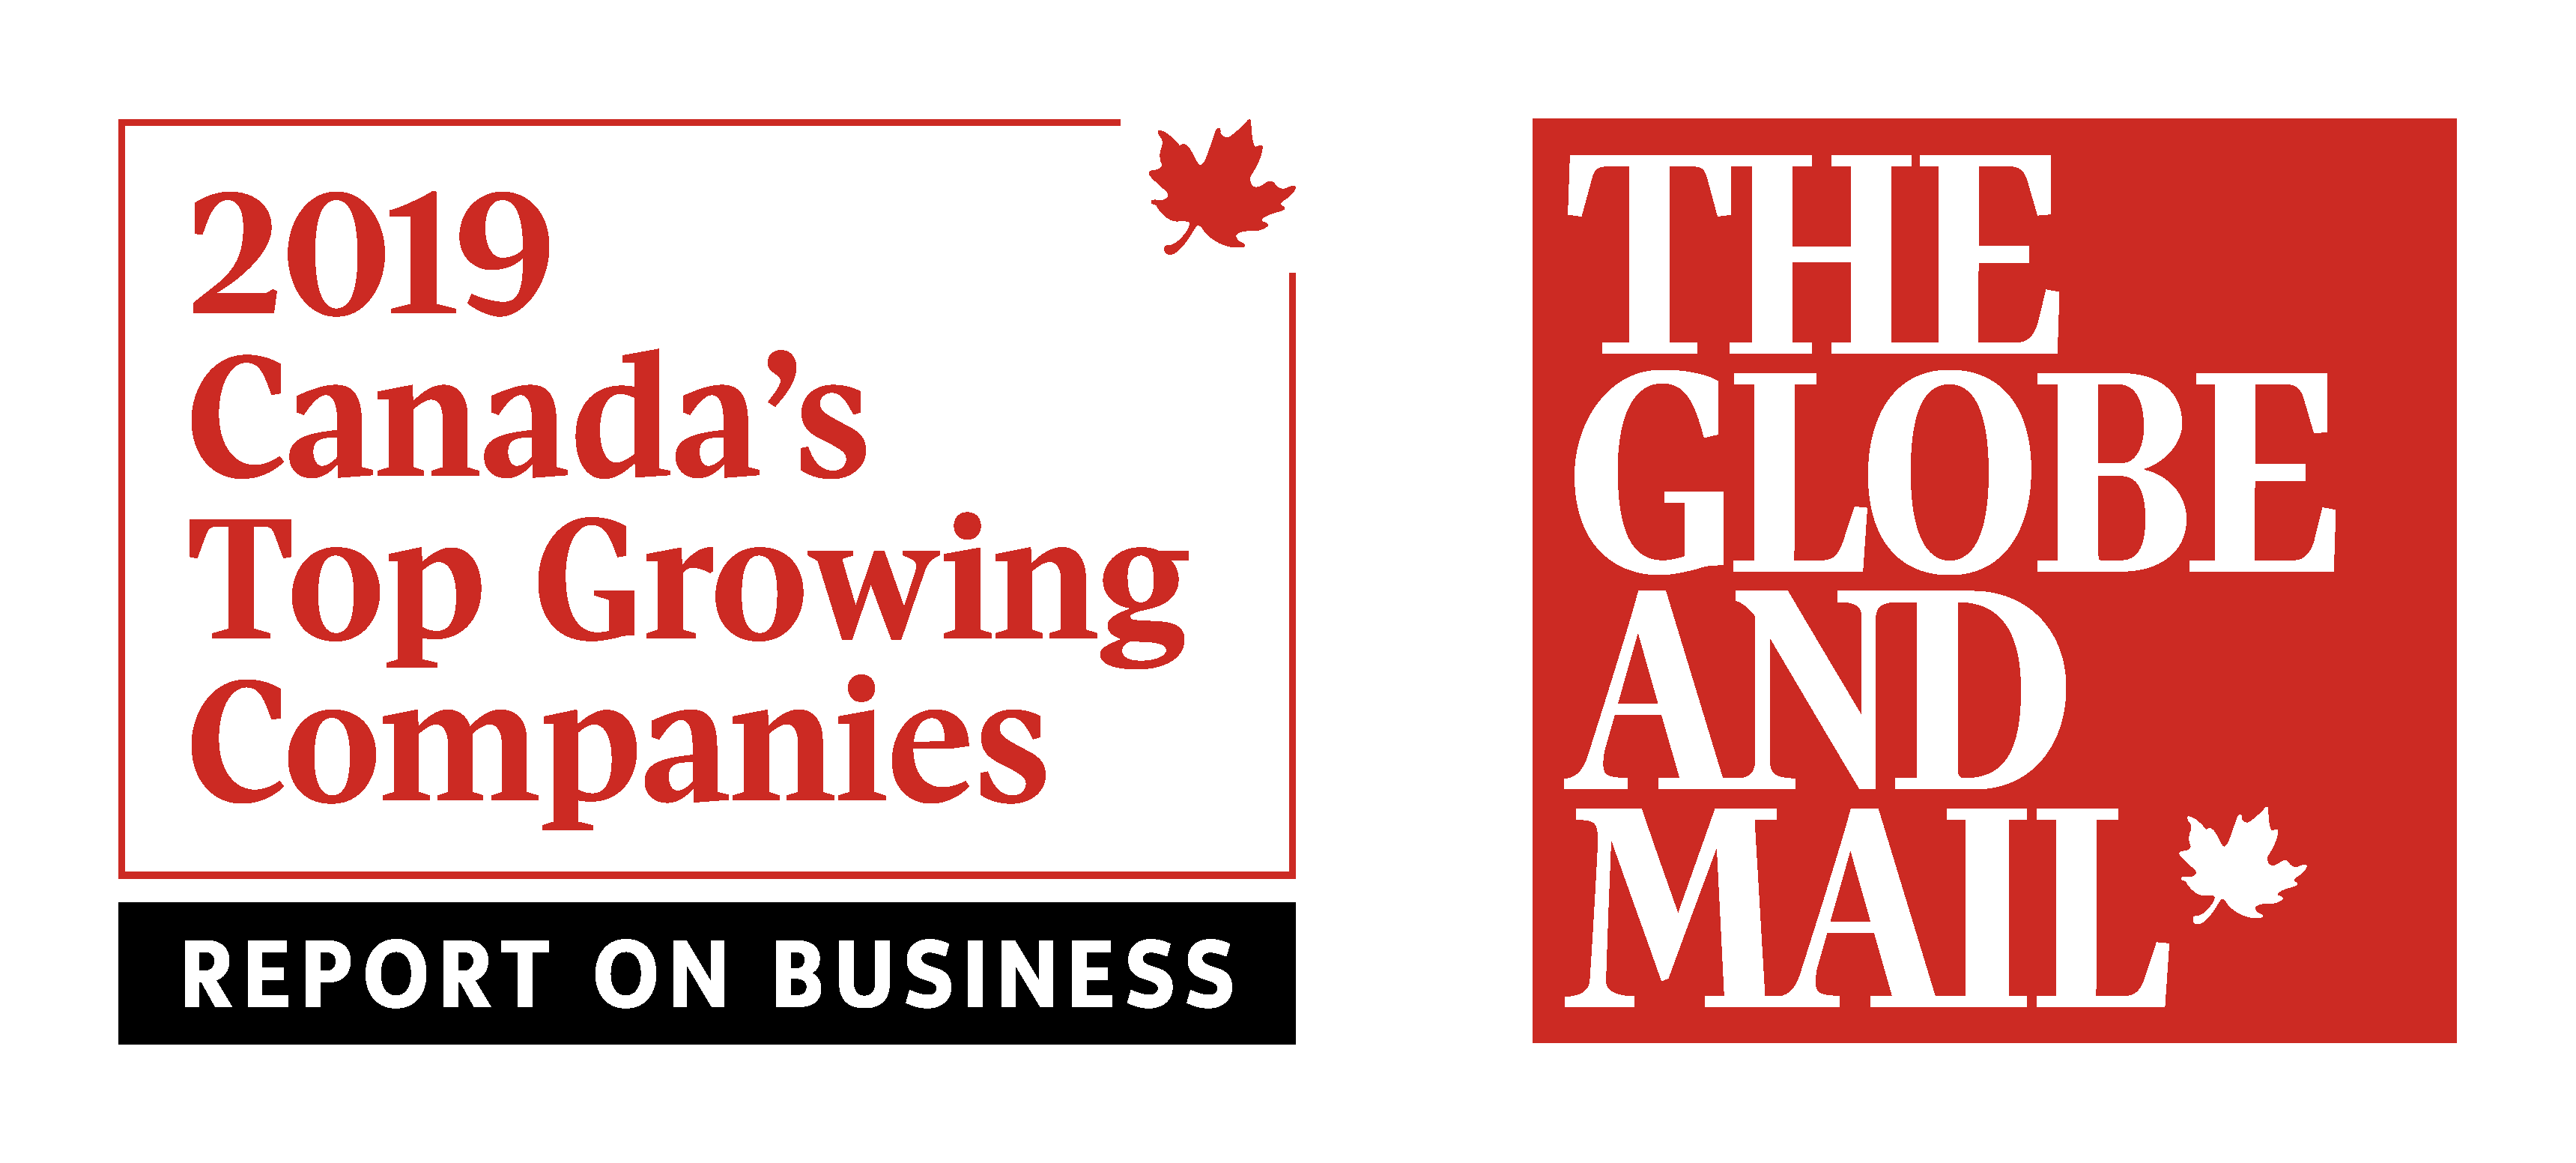 The Globe and Mail 2019 Top Growing Companies